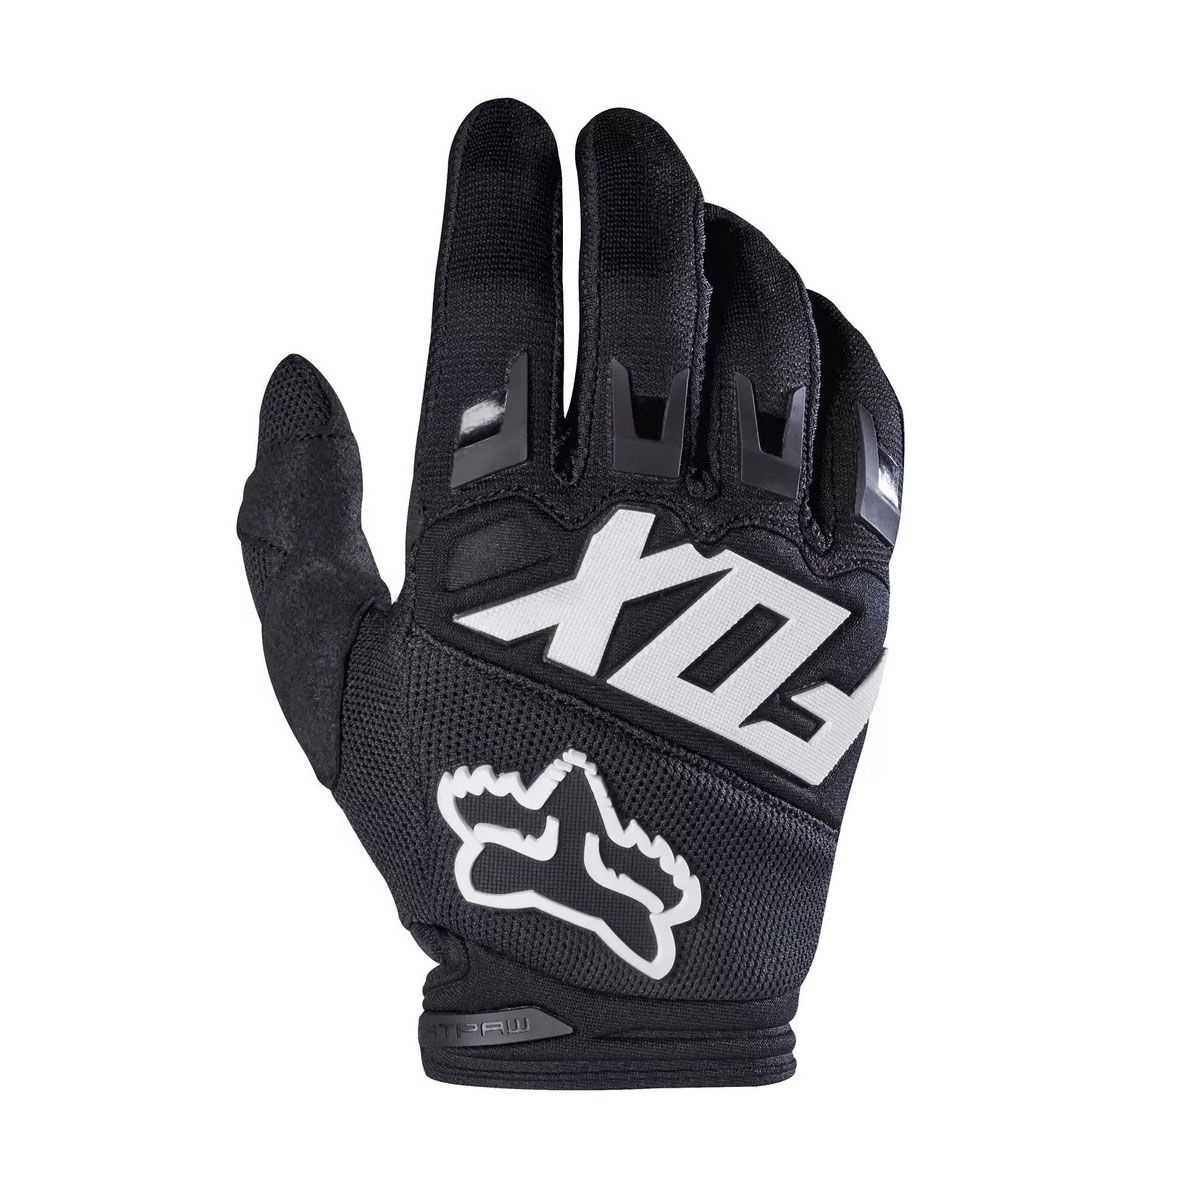 Luva de Motocross Fox MX Dirtpaw Race Yth 17 Black